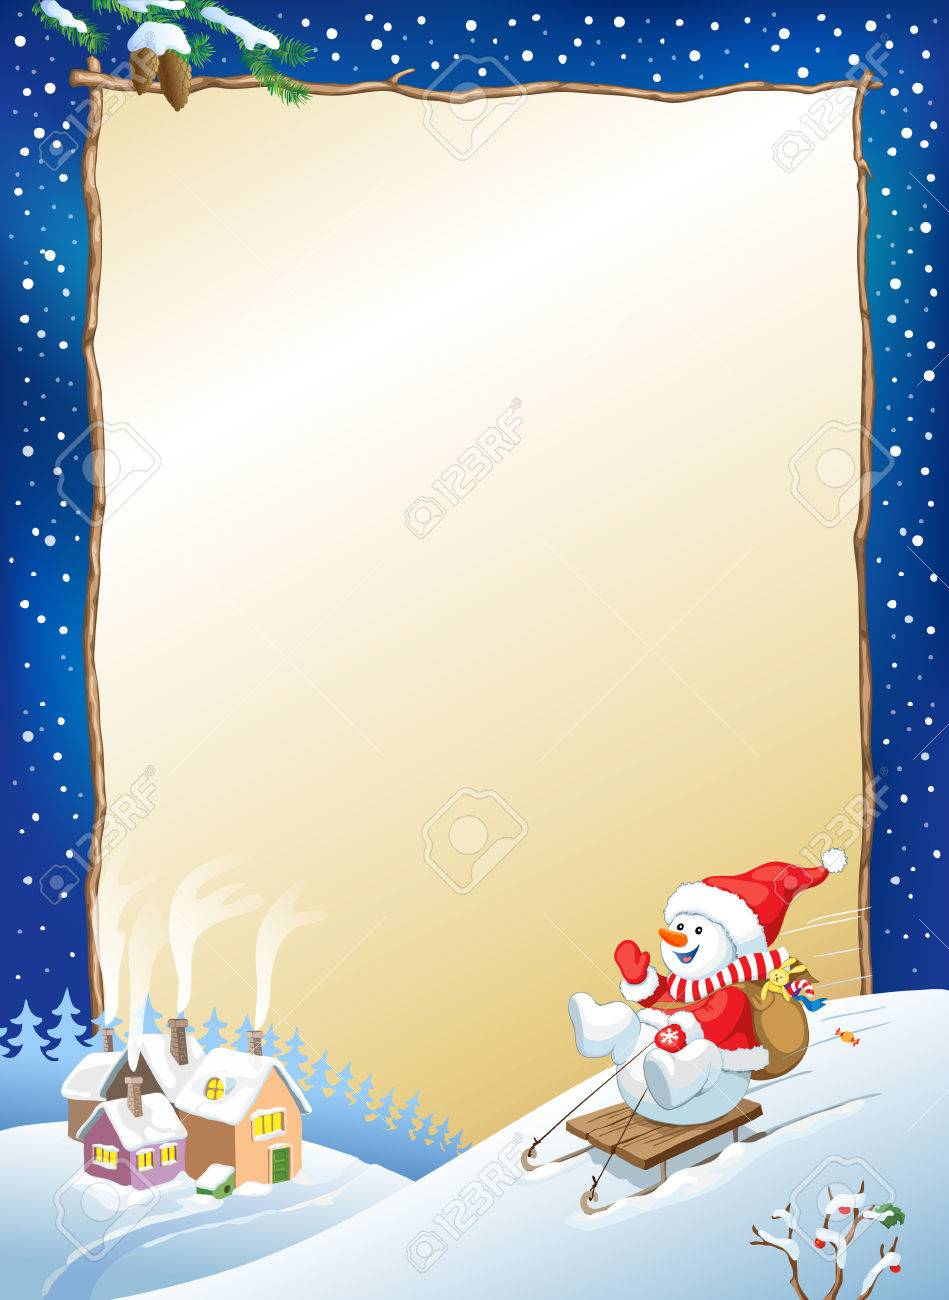 vector christmas background with snowman on sled with gifts